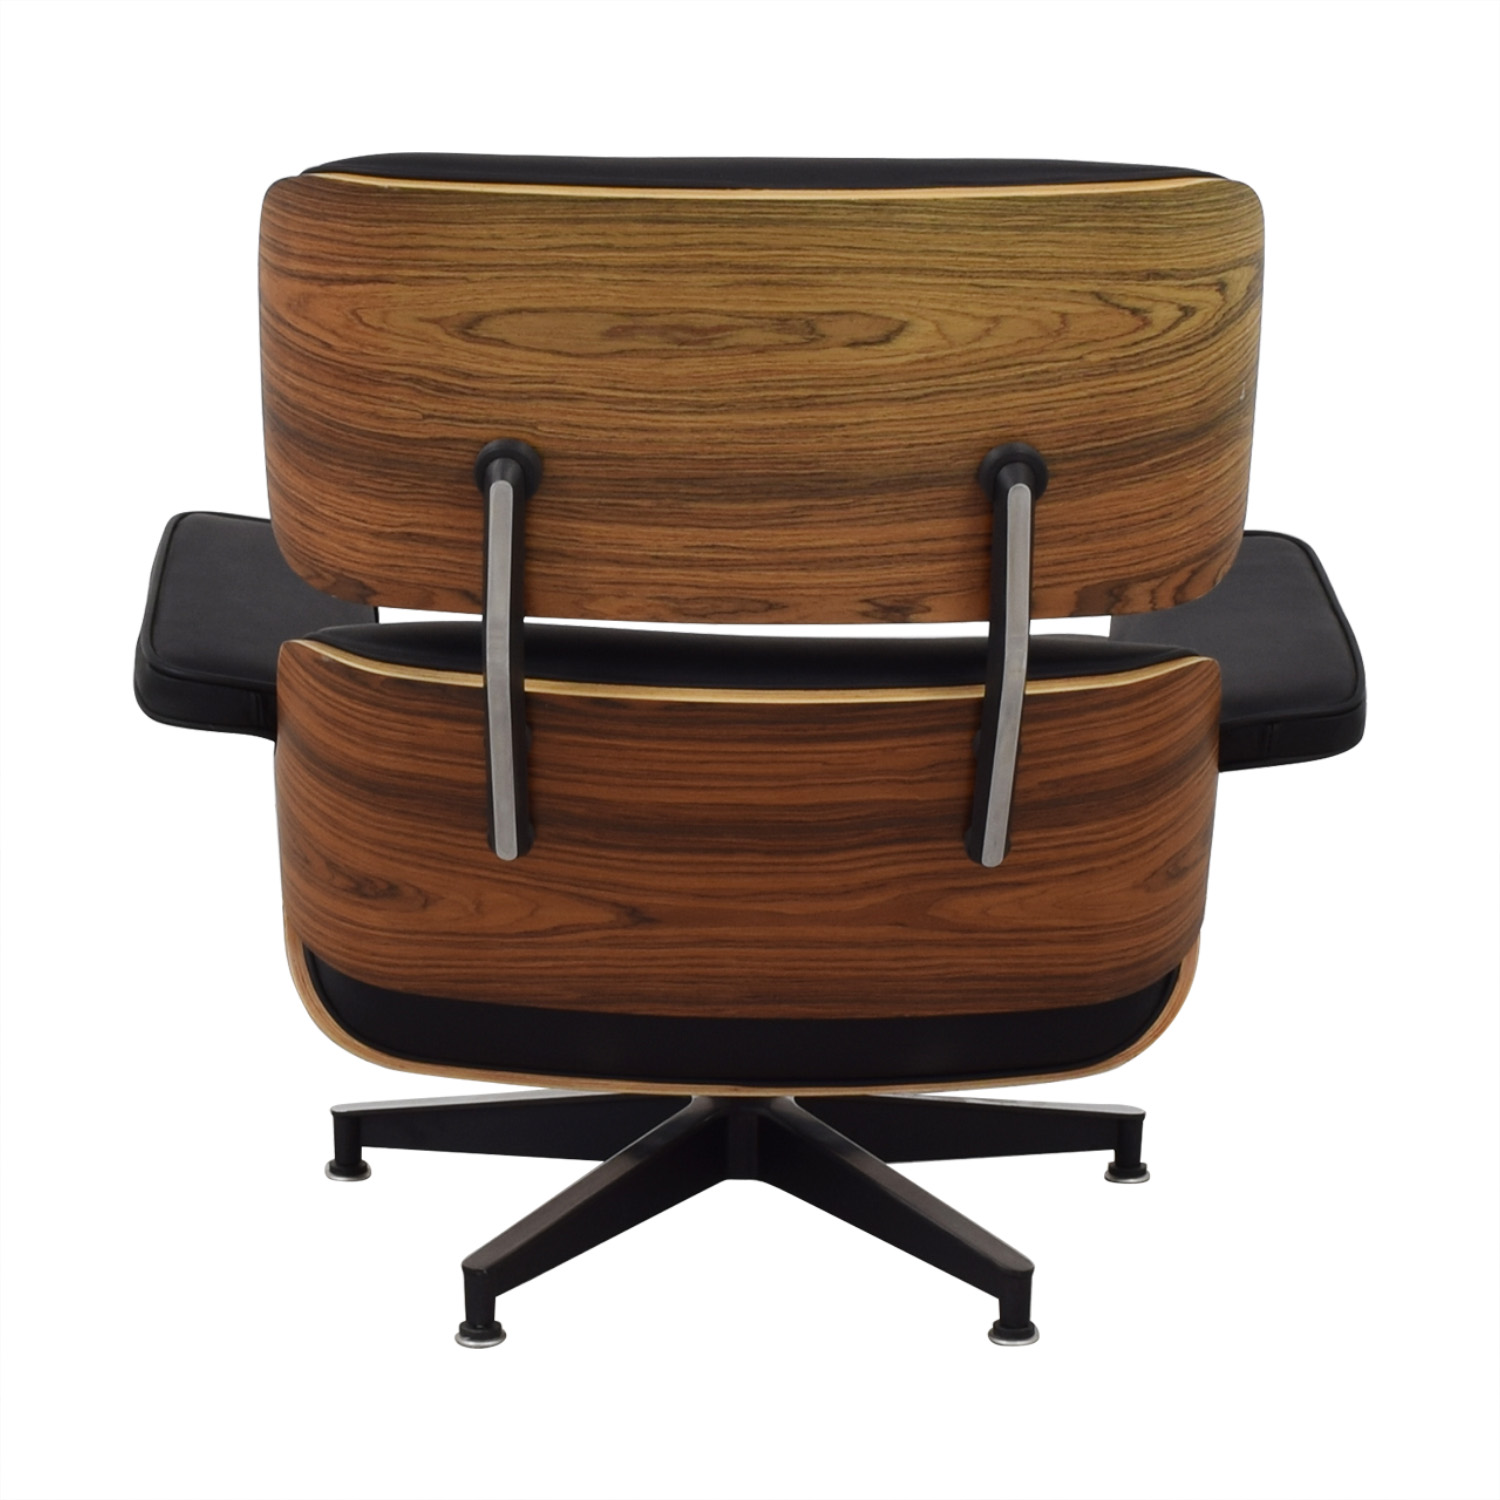 Fantastic 69 Off Allmodern Allmodern Eames Replica Wood Lounge Chair Chairs Ocoug Best Dining Table And Chair Ideas Images Ocougorg